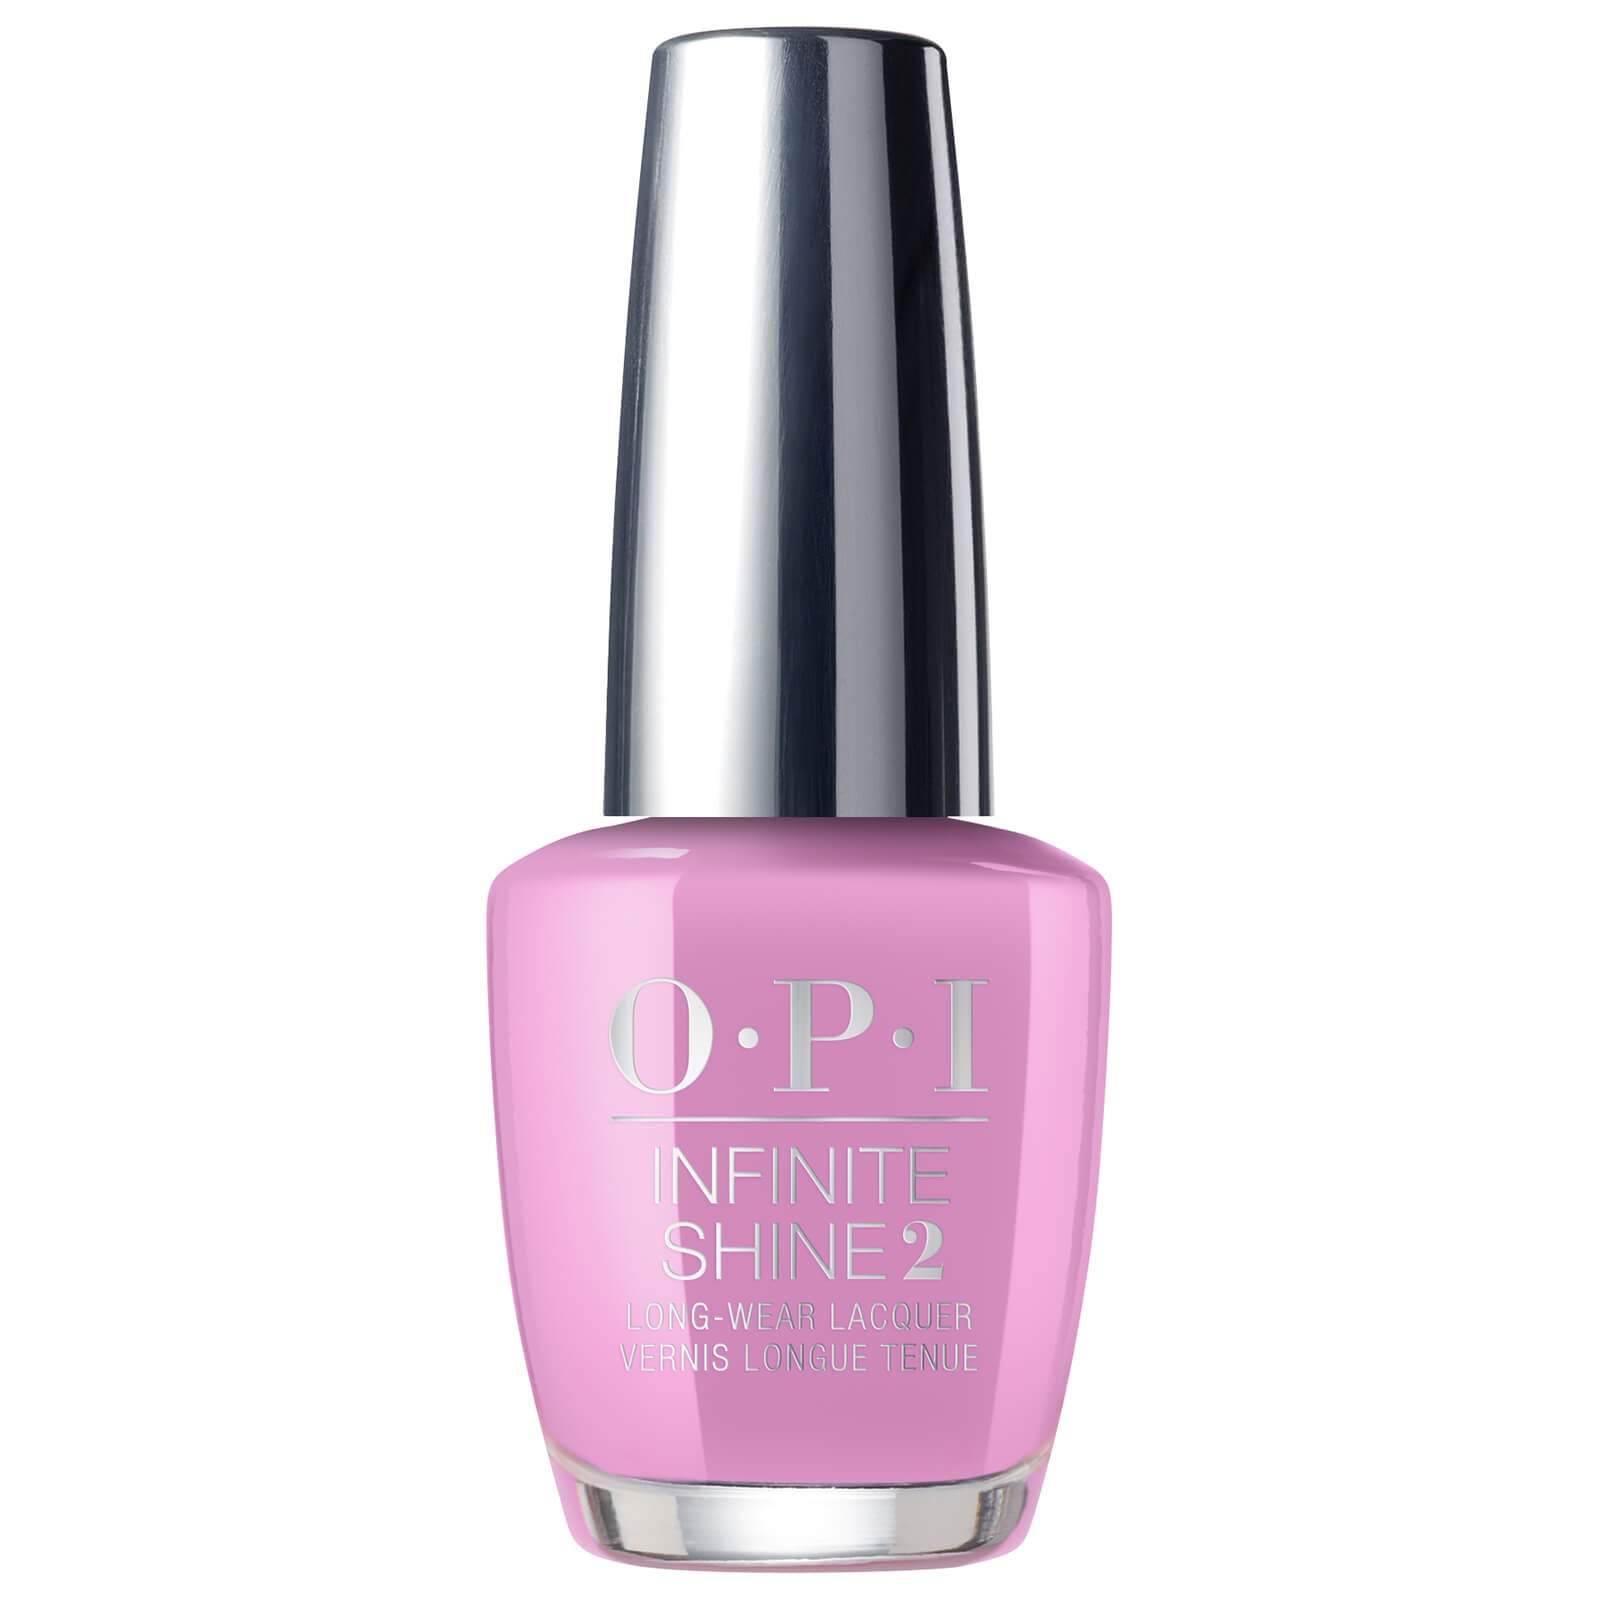 Lavendare to Find Courage-OPI Infinite Shine-UK-Wholesaler-Supplier-queenofnailscouk